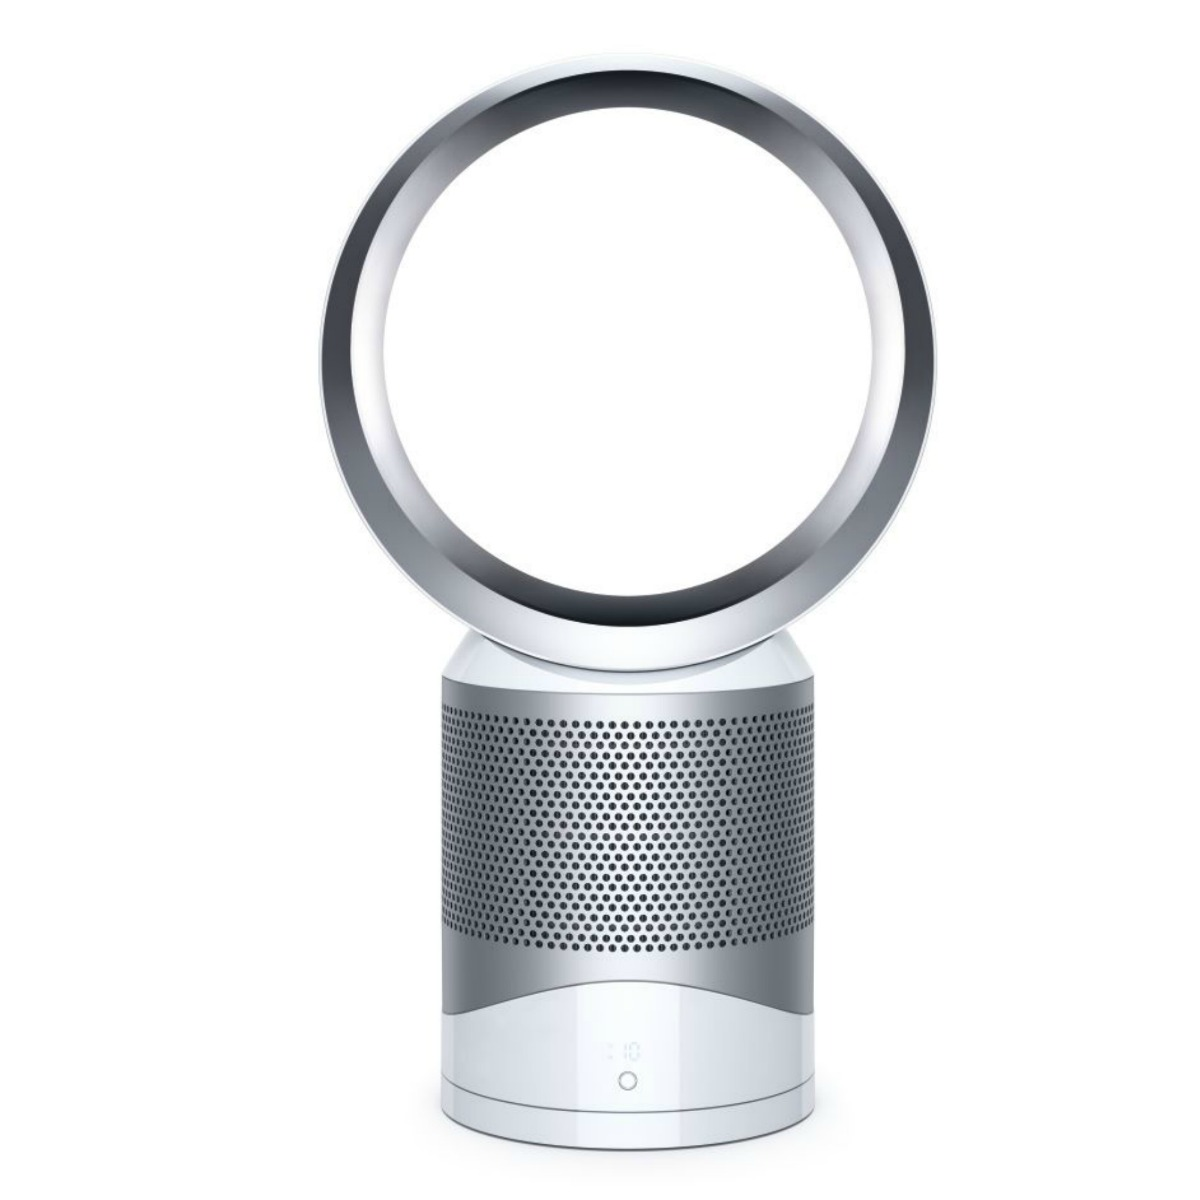 Dyson Dp01 Pure Cool Desk Purifier Fan I Knees Home And